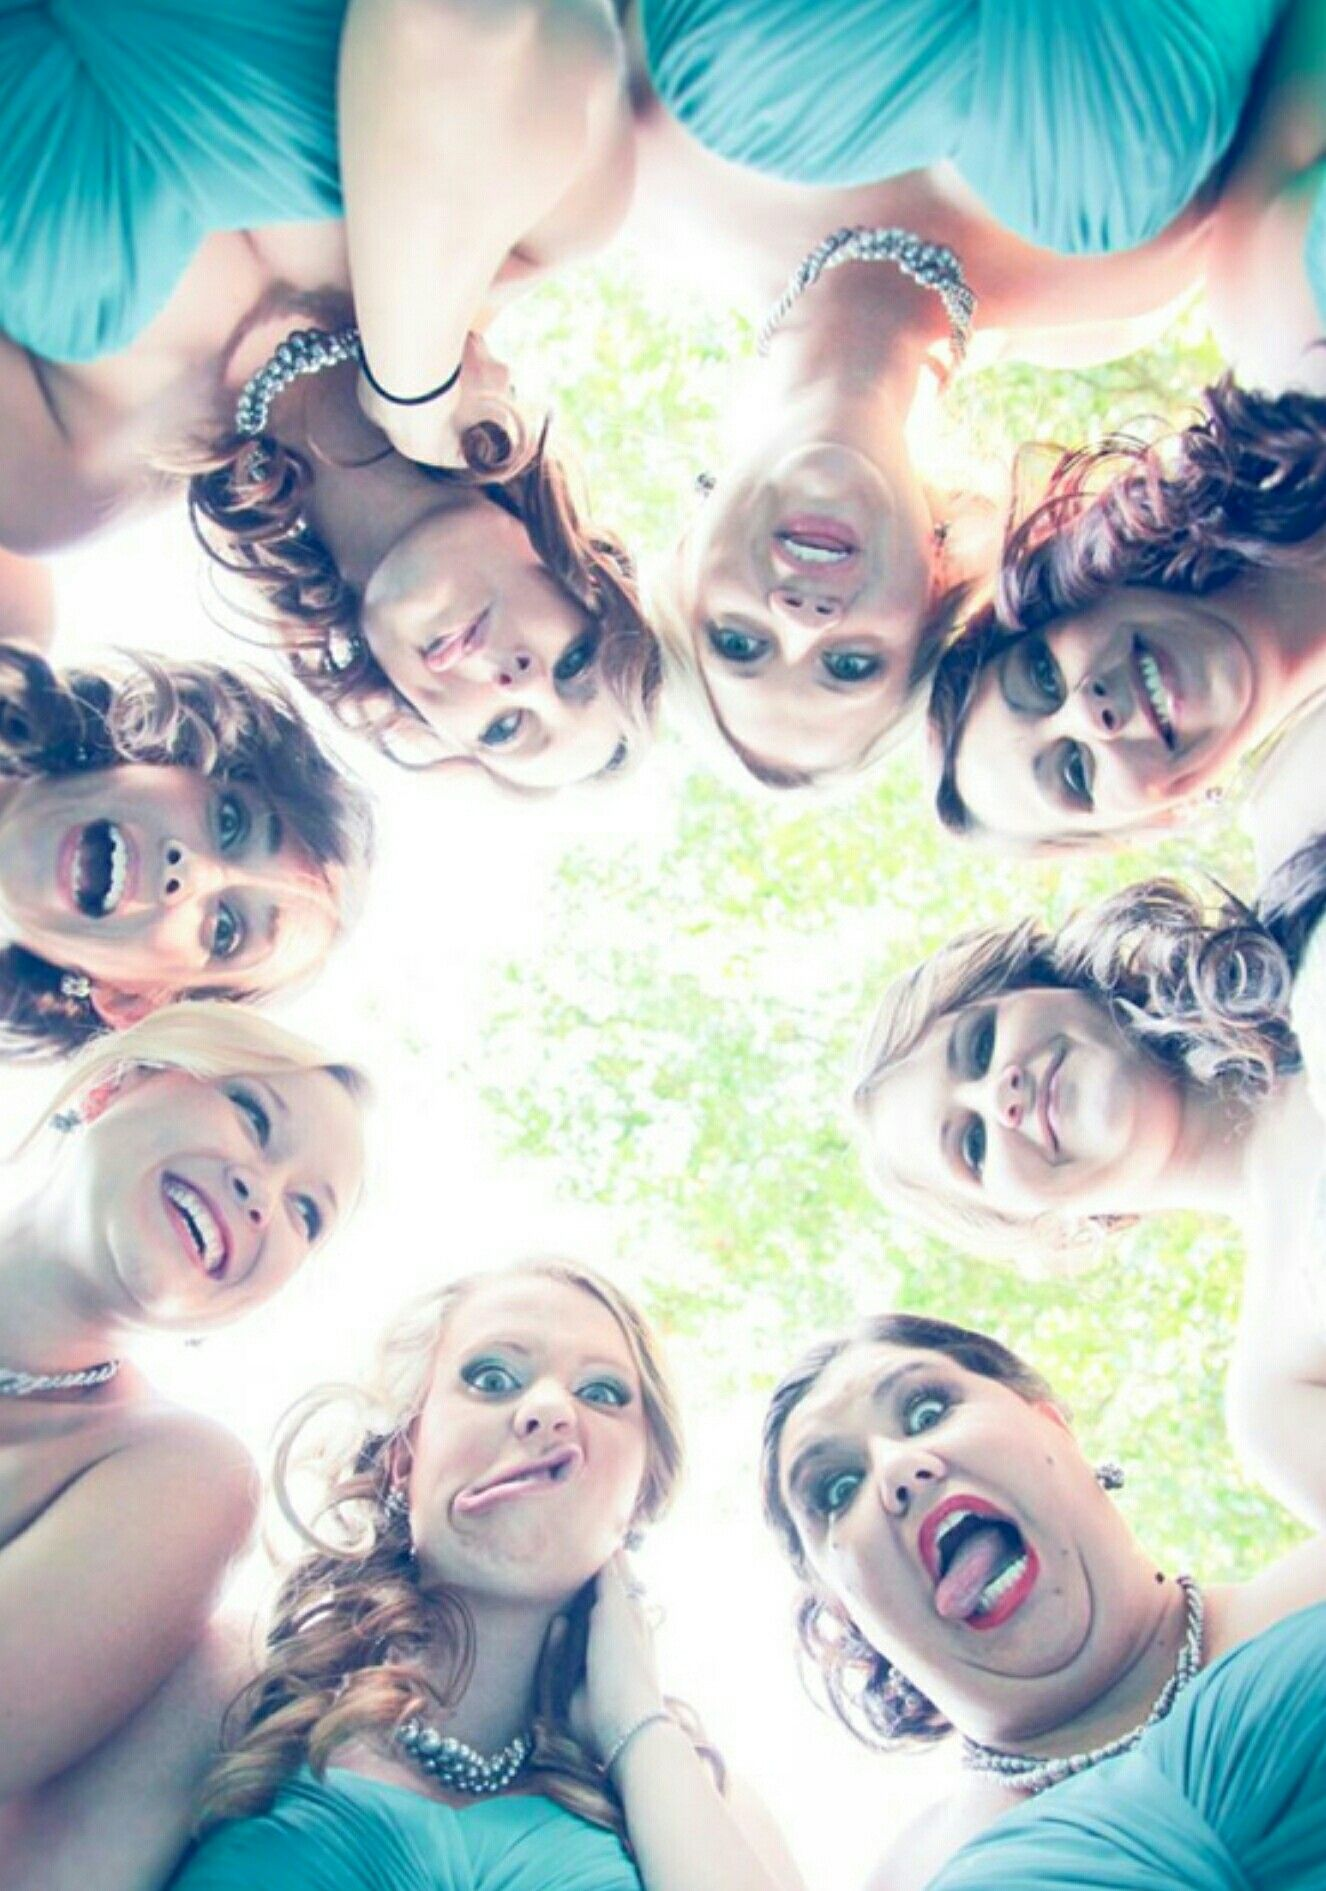 Funny Group Photo Pose Ideas : funny, group, photo, ideas, Group, Photo, Bridesmaids, Photos,, Bridesmaid, Pictures,, Wedding, Picture, Poses